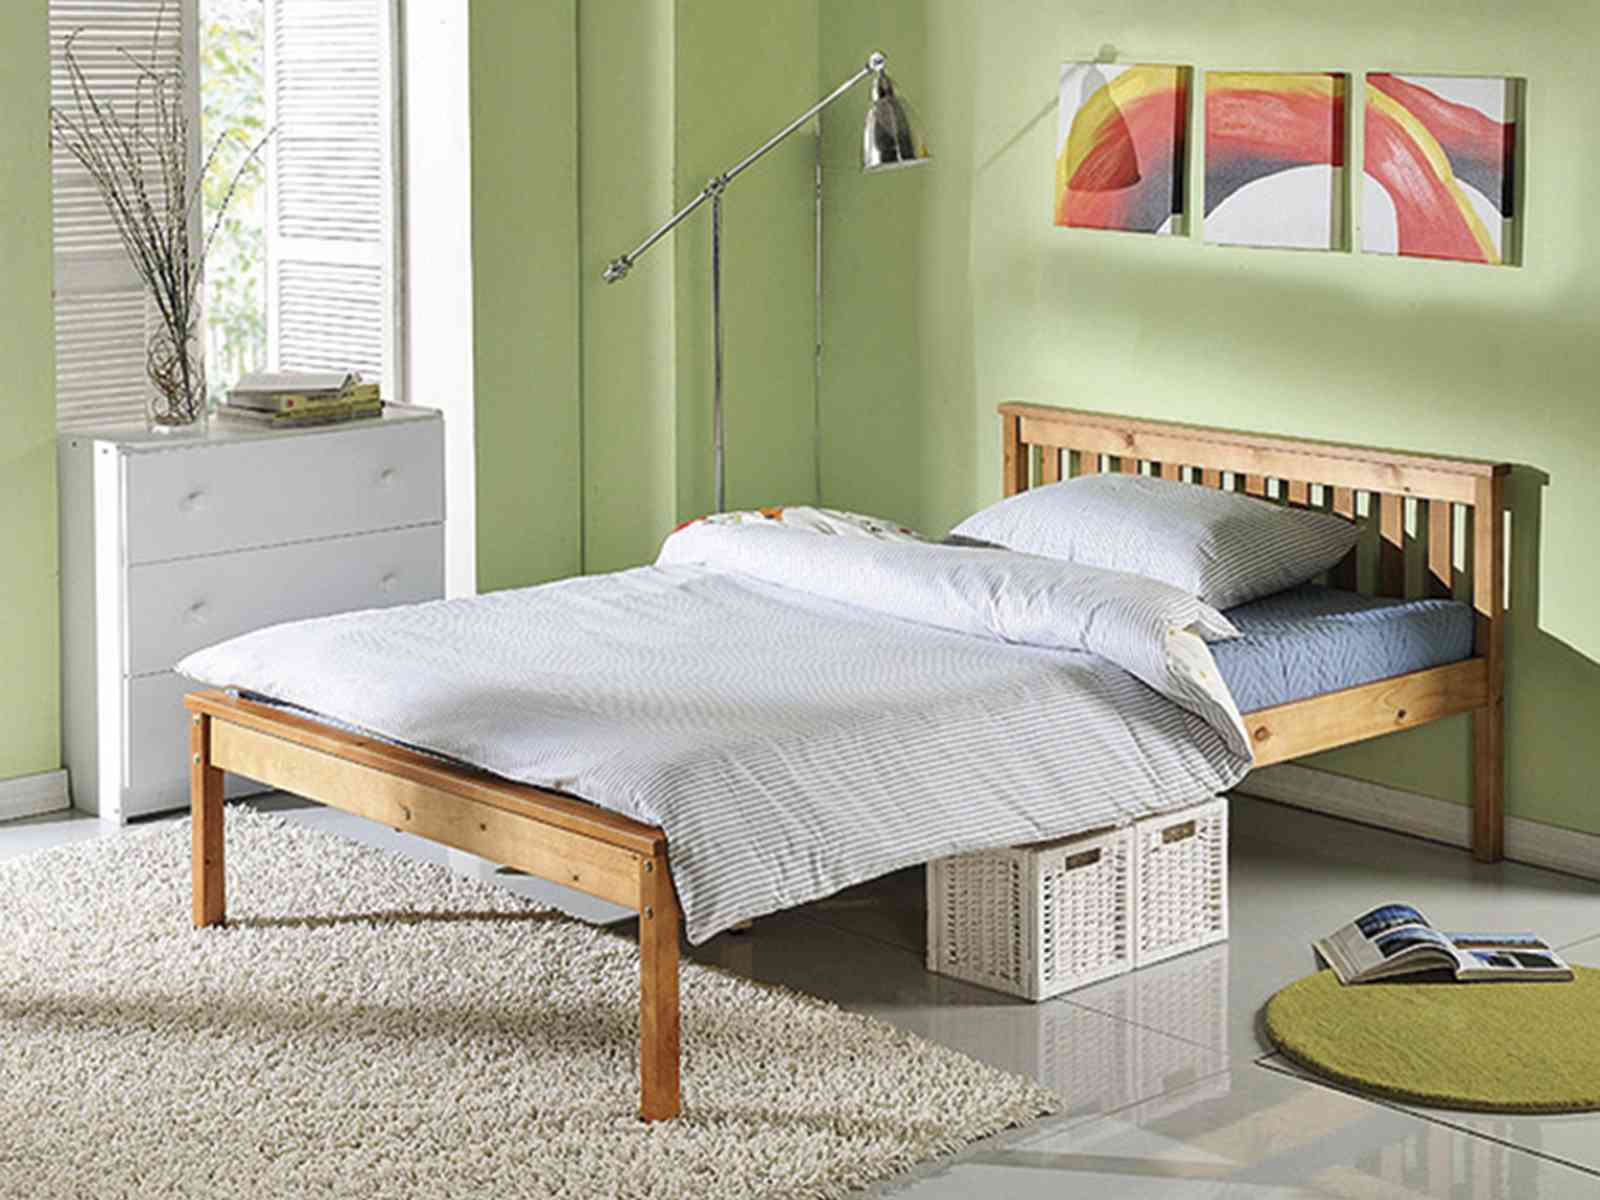 Bed Frame Calgary Gfw The Furniture Warehouse Calgary Bedstead